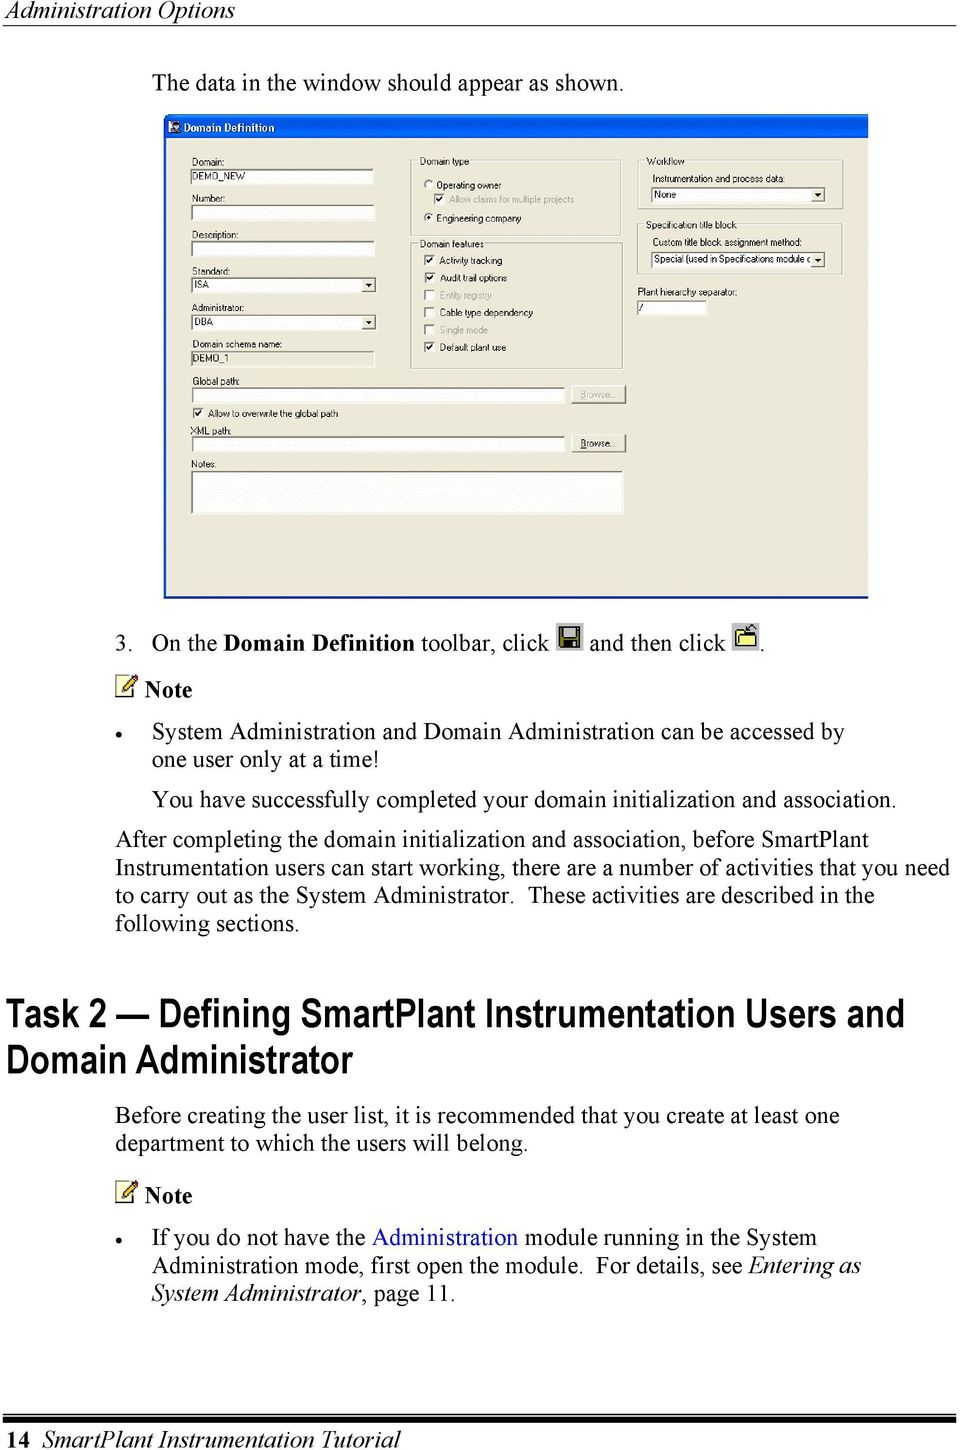 Smartplant Instrumentation Tutorial Pdf Wiring Basics After Completing The Domain Initialization And Association Before Users Can Start Working